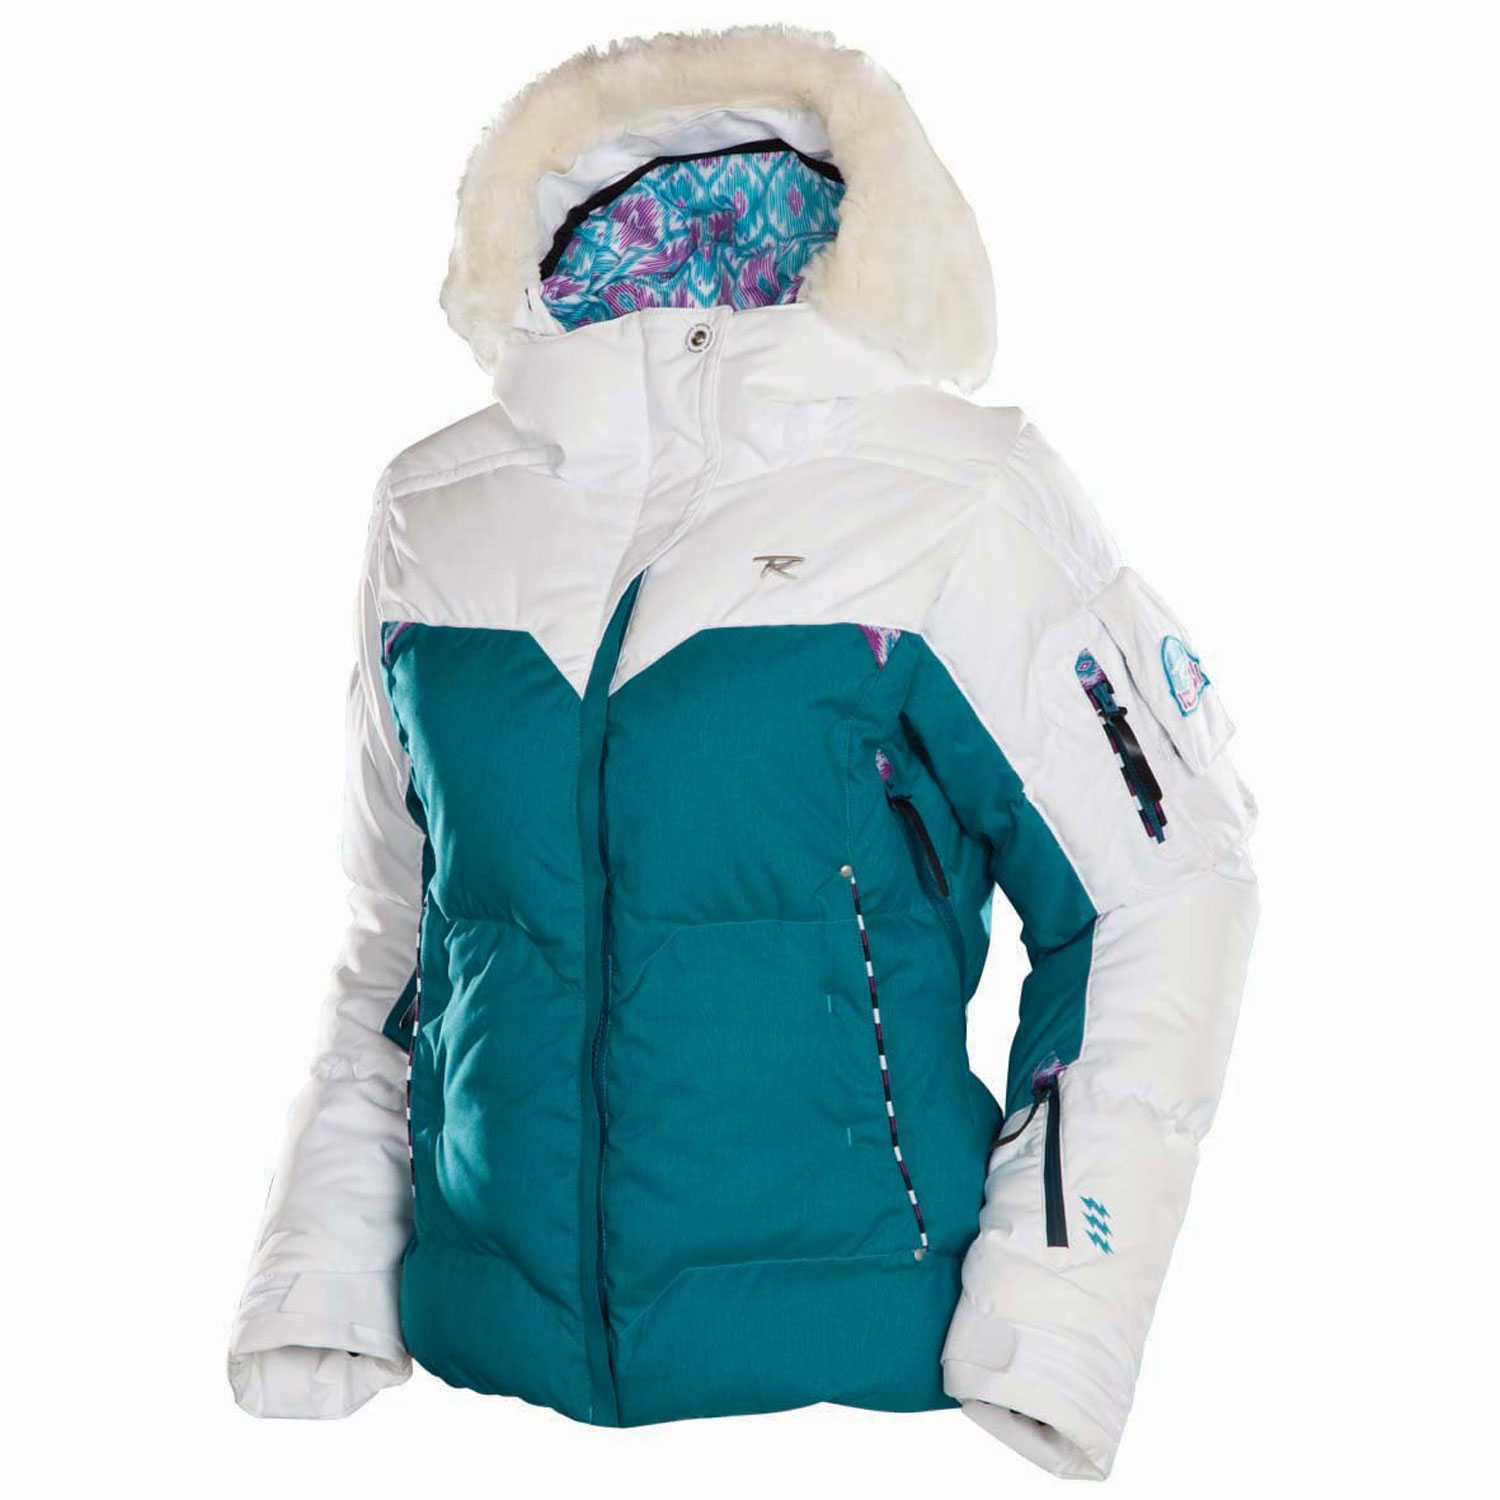 Ski Key Features of the Rossignol Sky Polydown Ski Jacket: 20,000mm Waterproof 20,000gm2 Breathable Heather Weave 100% polyester Weight: 160g/m2 Finish: Lamination 2L DWR Lining: Polydown Fixed hood - removable fake fur around the hood Removable powder skirt Aligaiter system to attach the jacket to the pant Lycra cuffs with thumb loop Vent zip Elastic cord on bottom Stored pockets Key holder Goggle wiper Whistle in sleeve pocket Ski pass pocket 63cm/24.8in center back length - $246.95